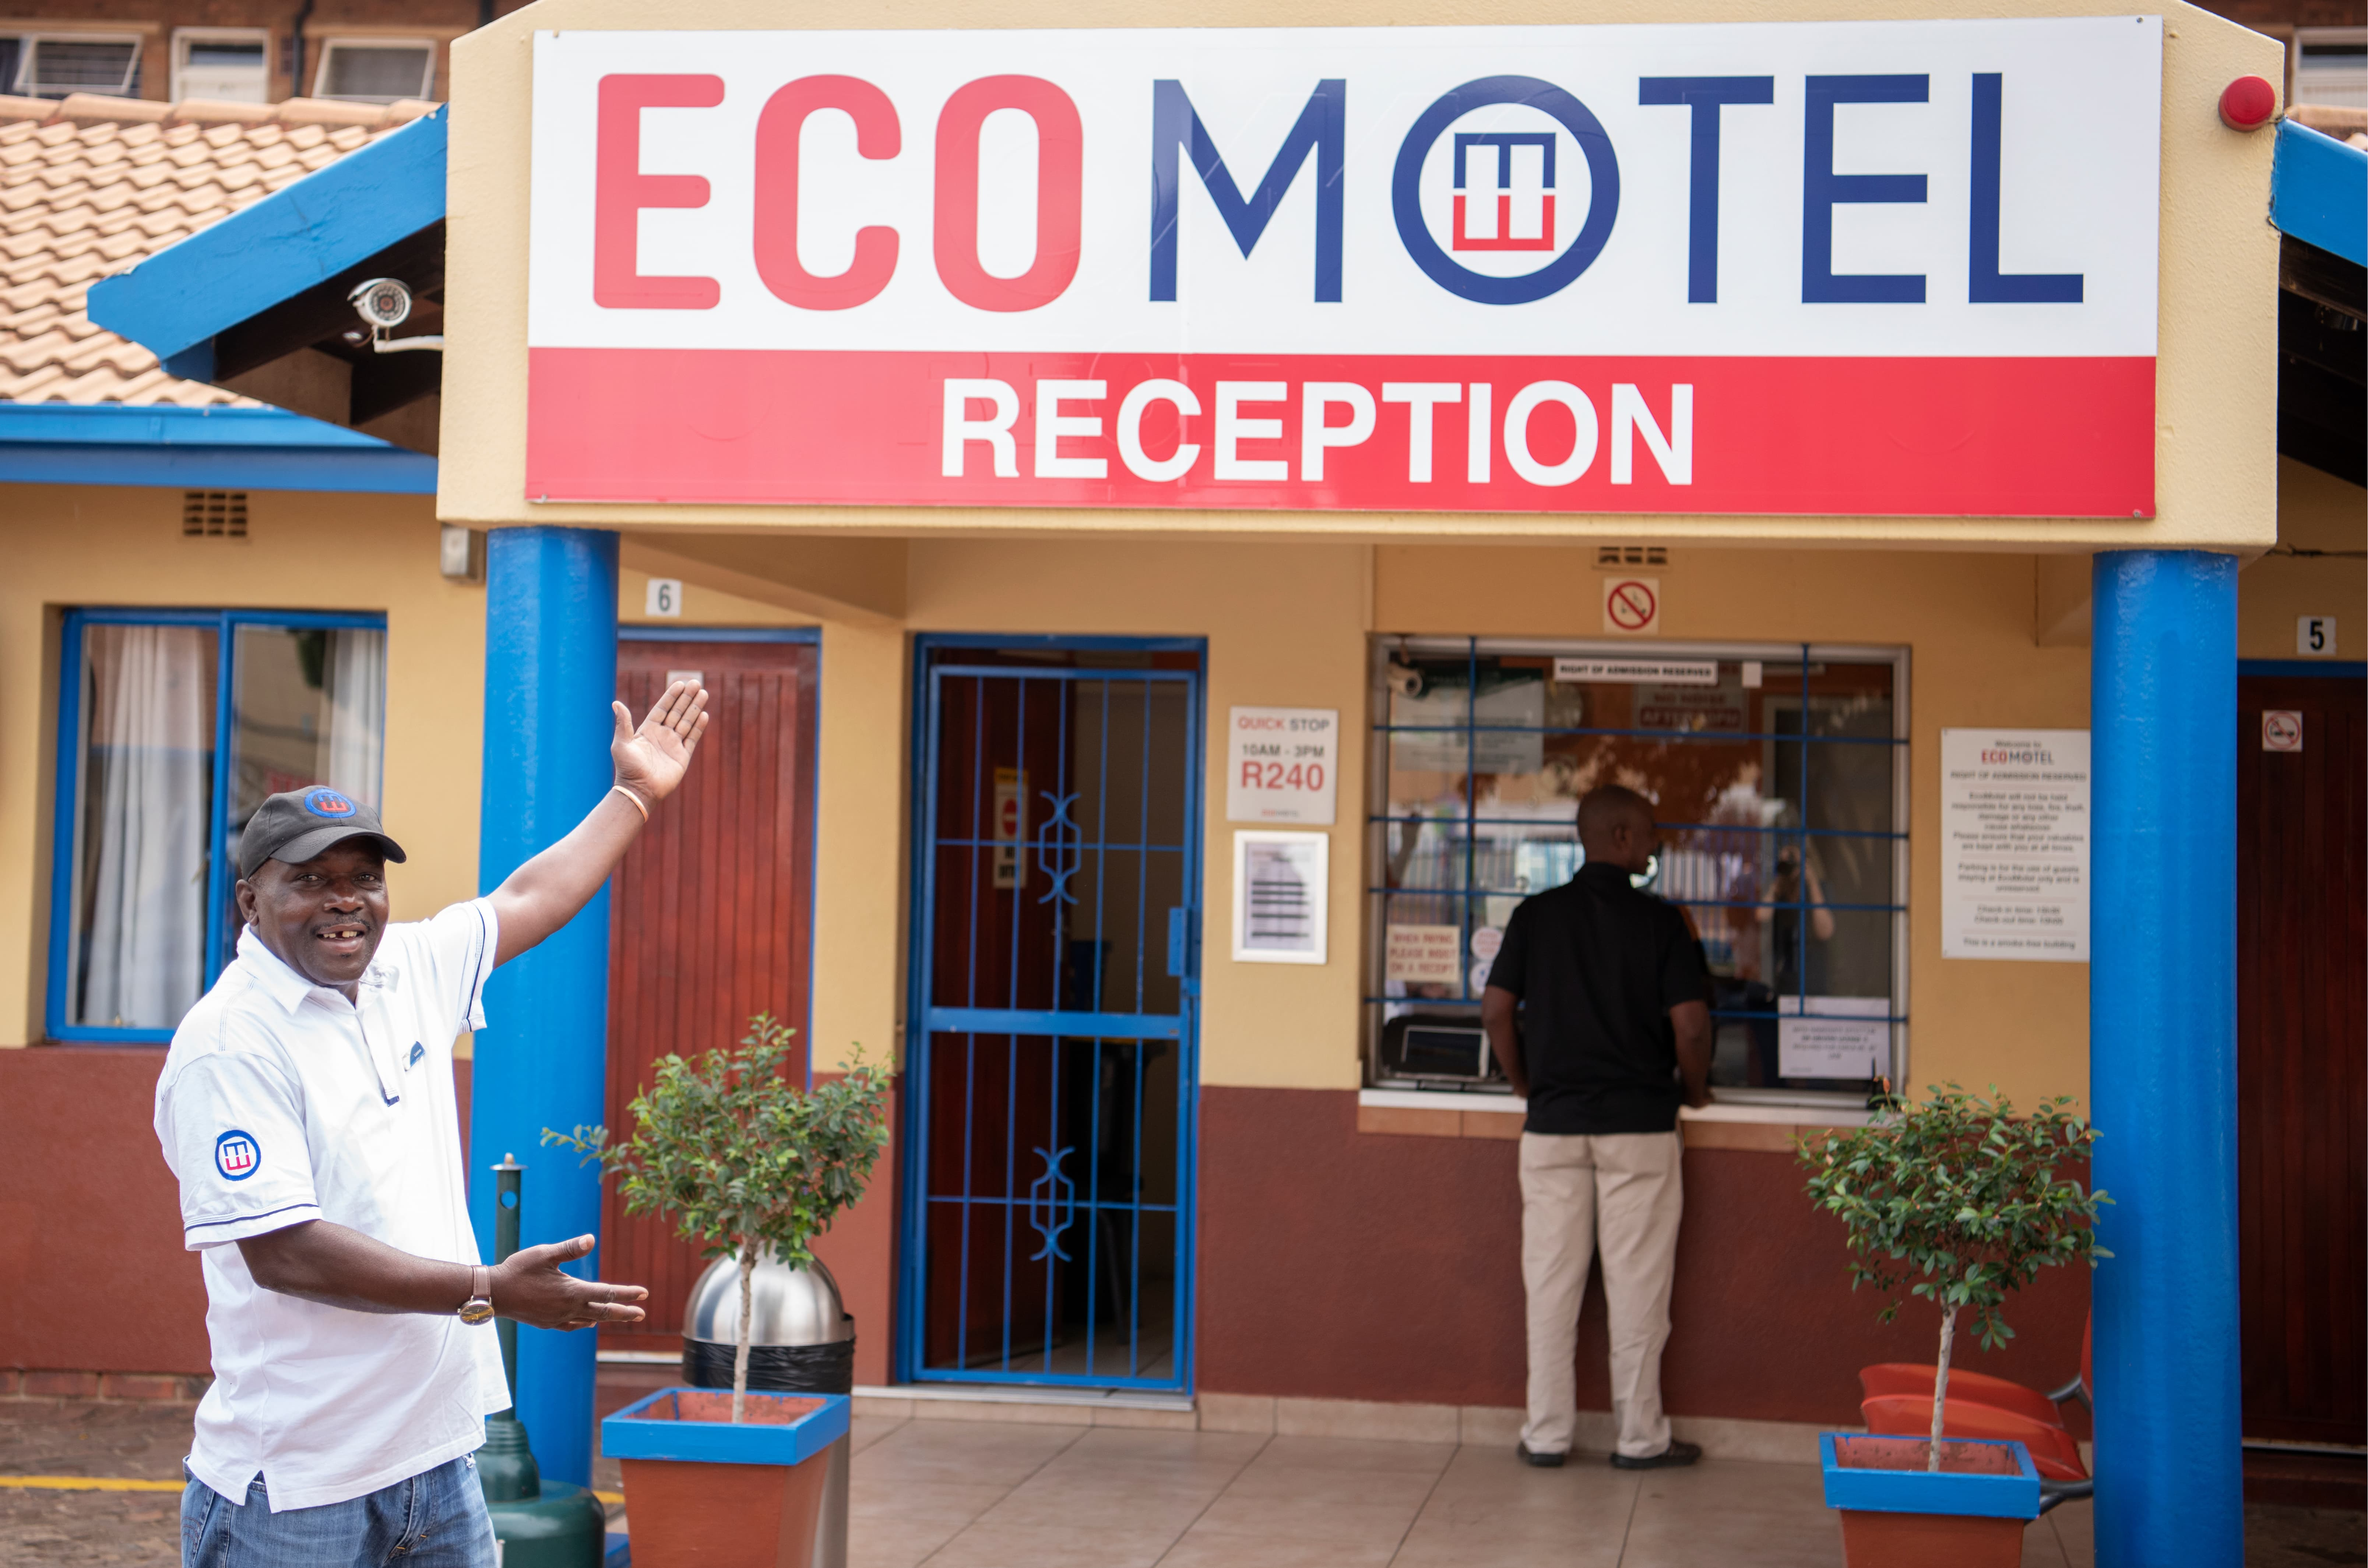 Our Guide to Finding Cheap Motels Near Kempton Park